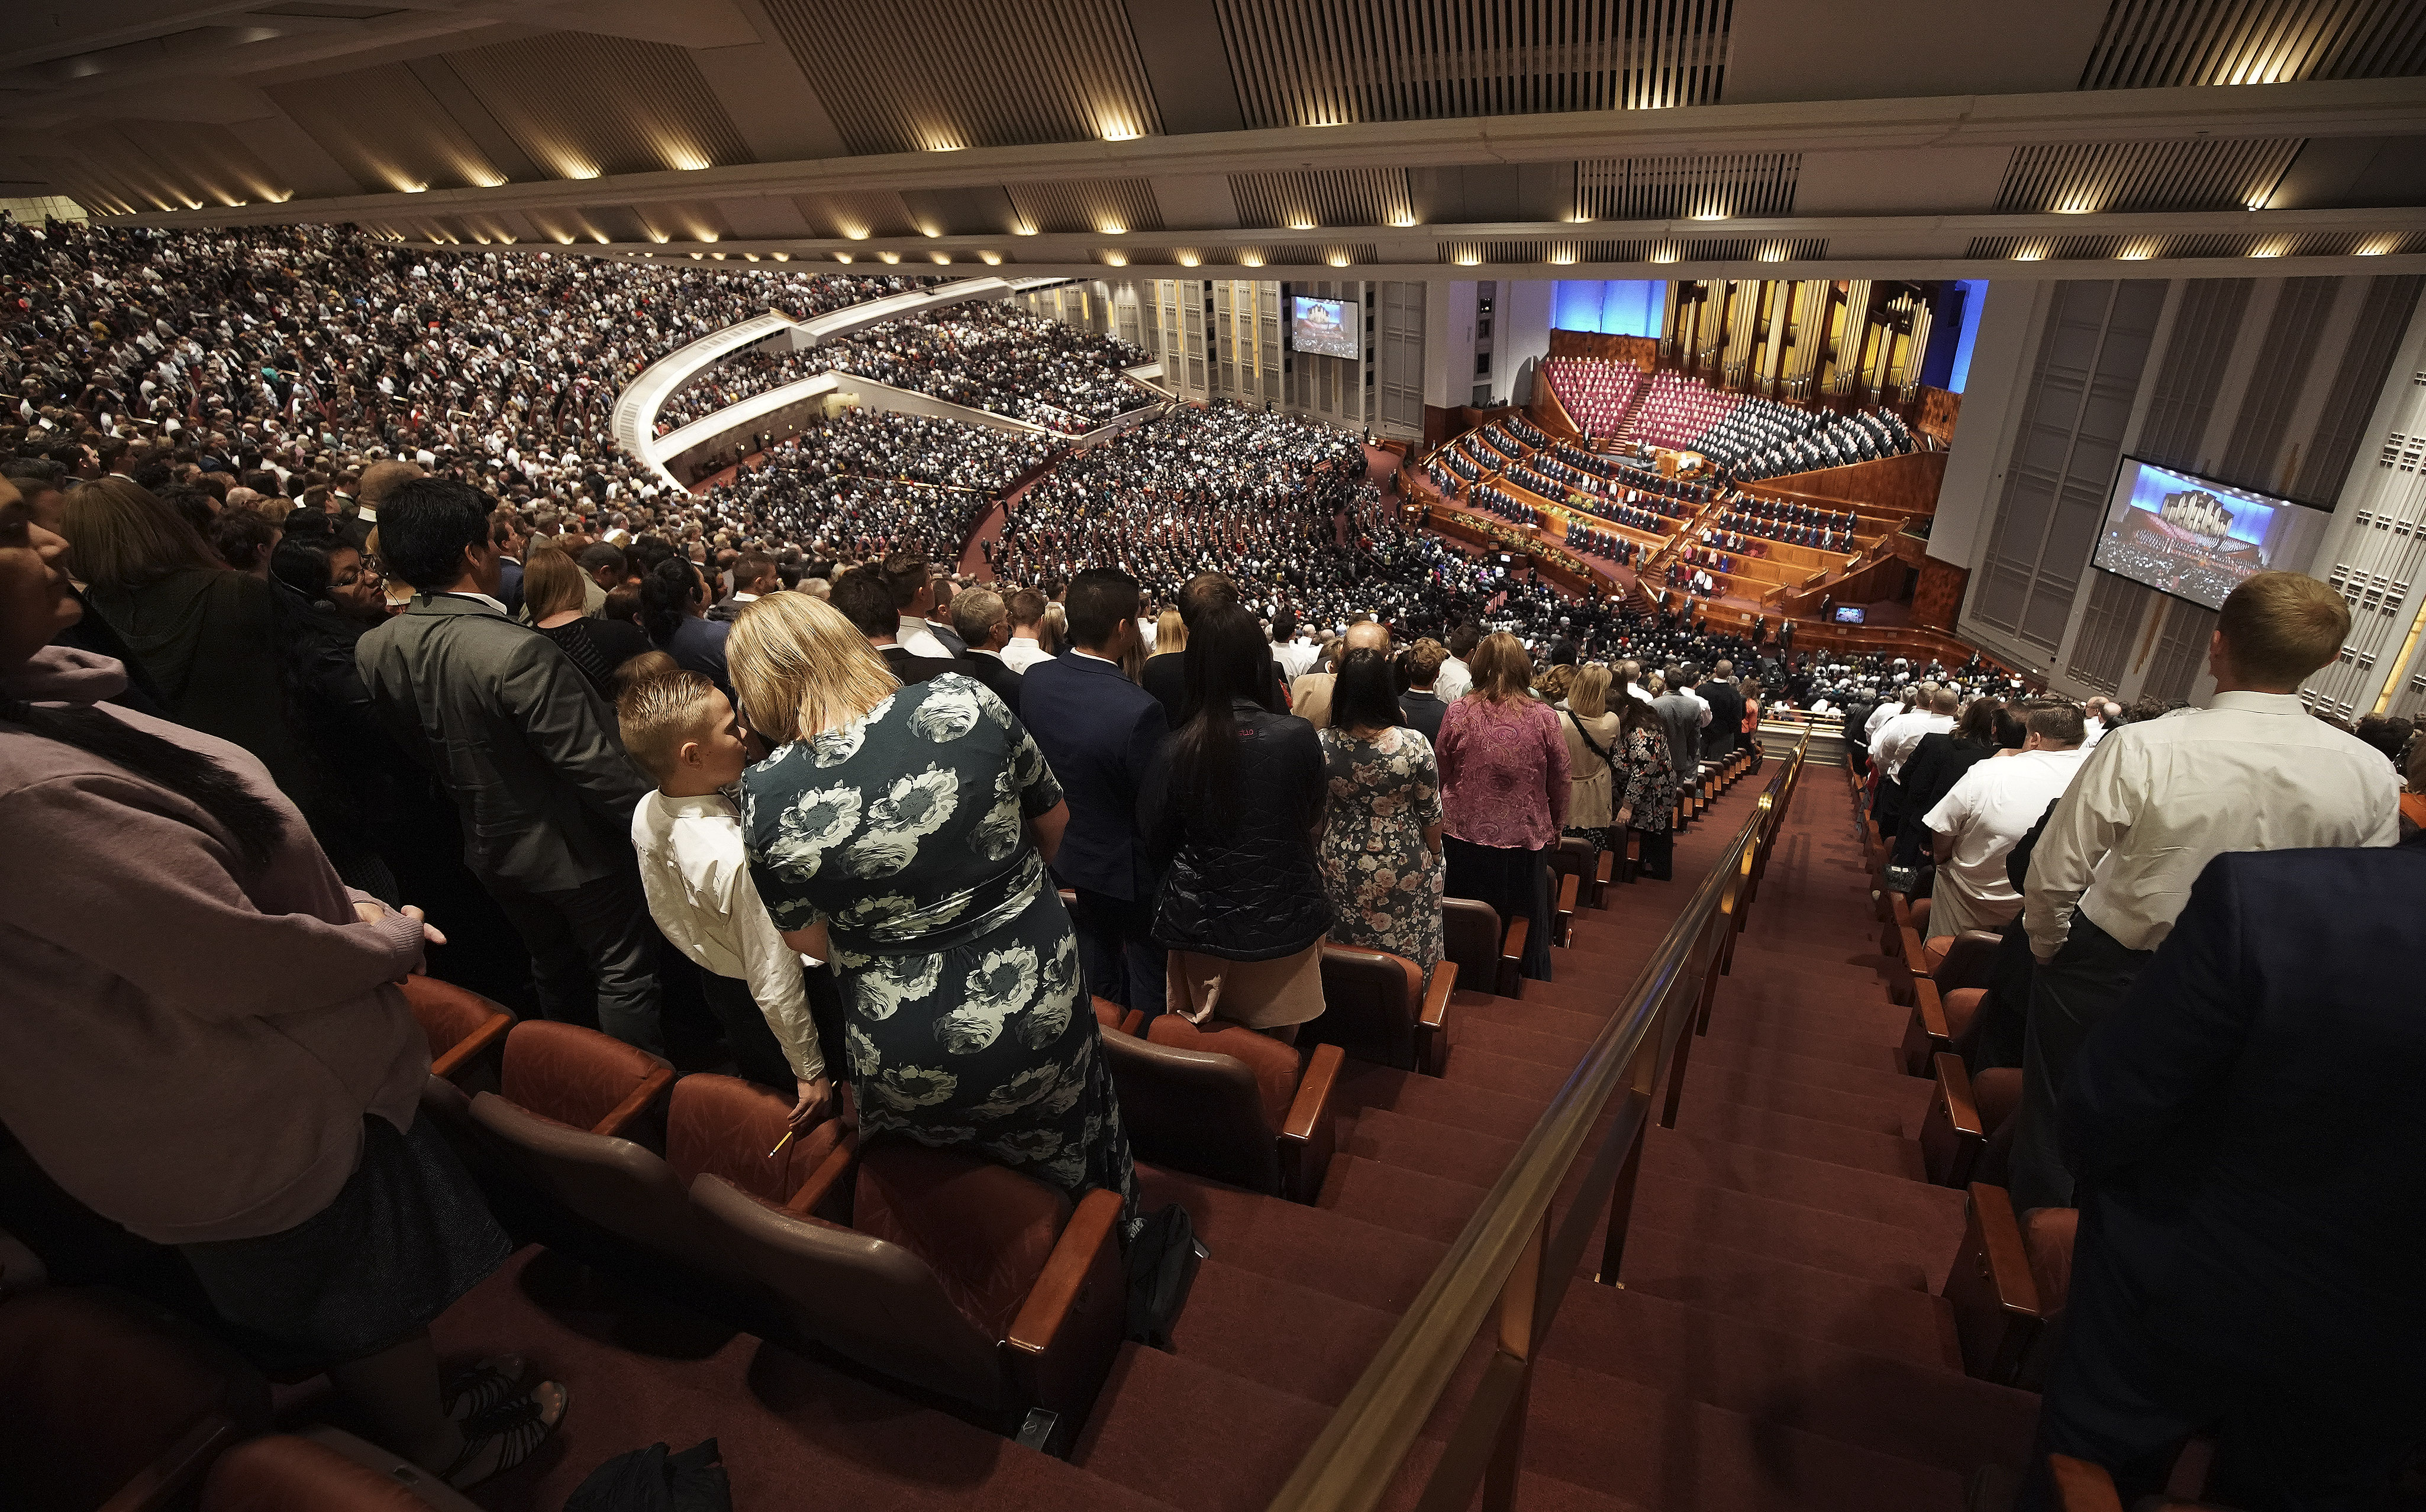 Conferencegoers sing during the Sunday morning session of the 189th Semiannual General Conference of The Church of Jesus Christ of Latter-day Saints in Salt Lake City on Sunday, Oct. 6, 2019.